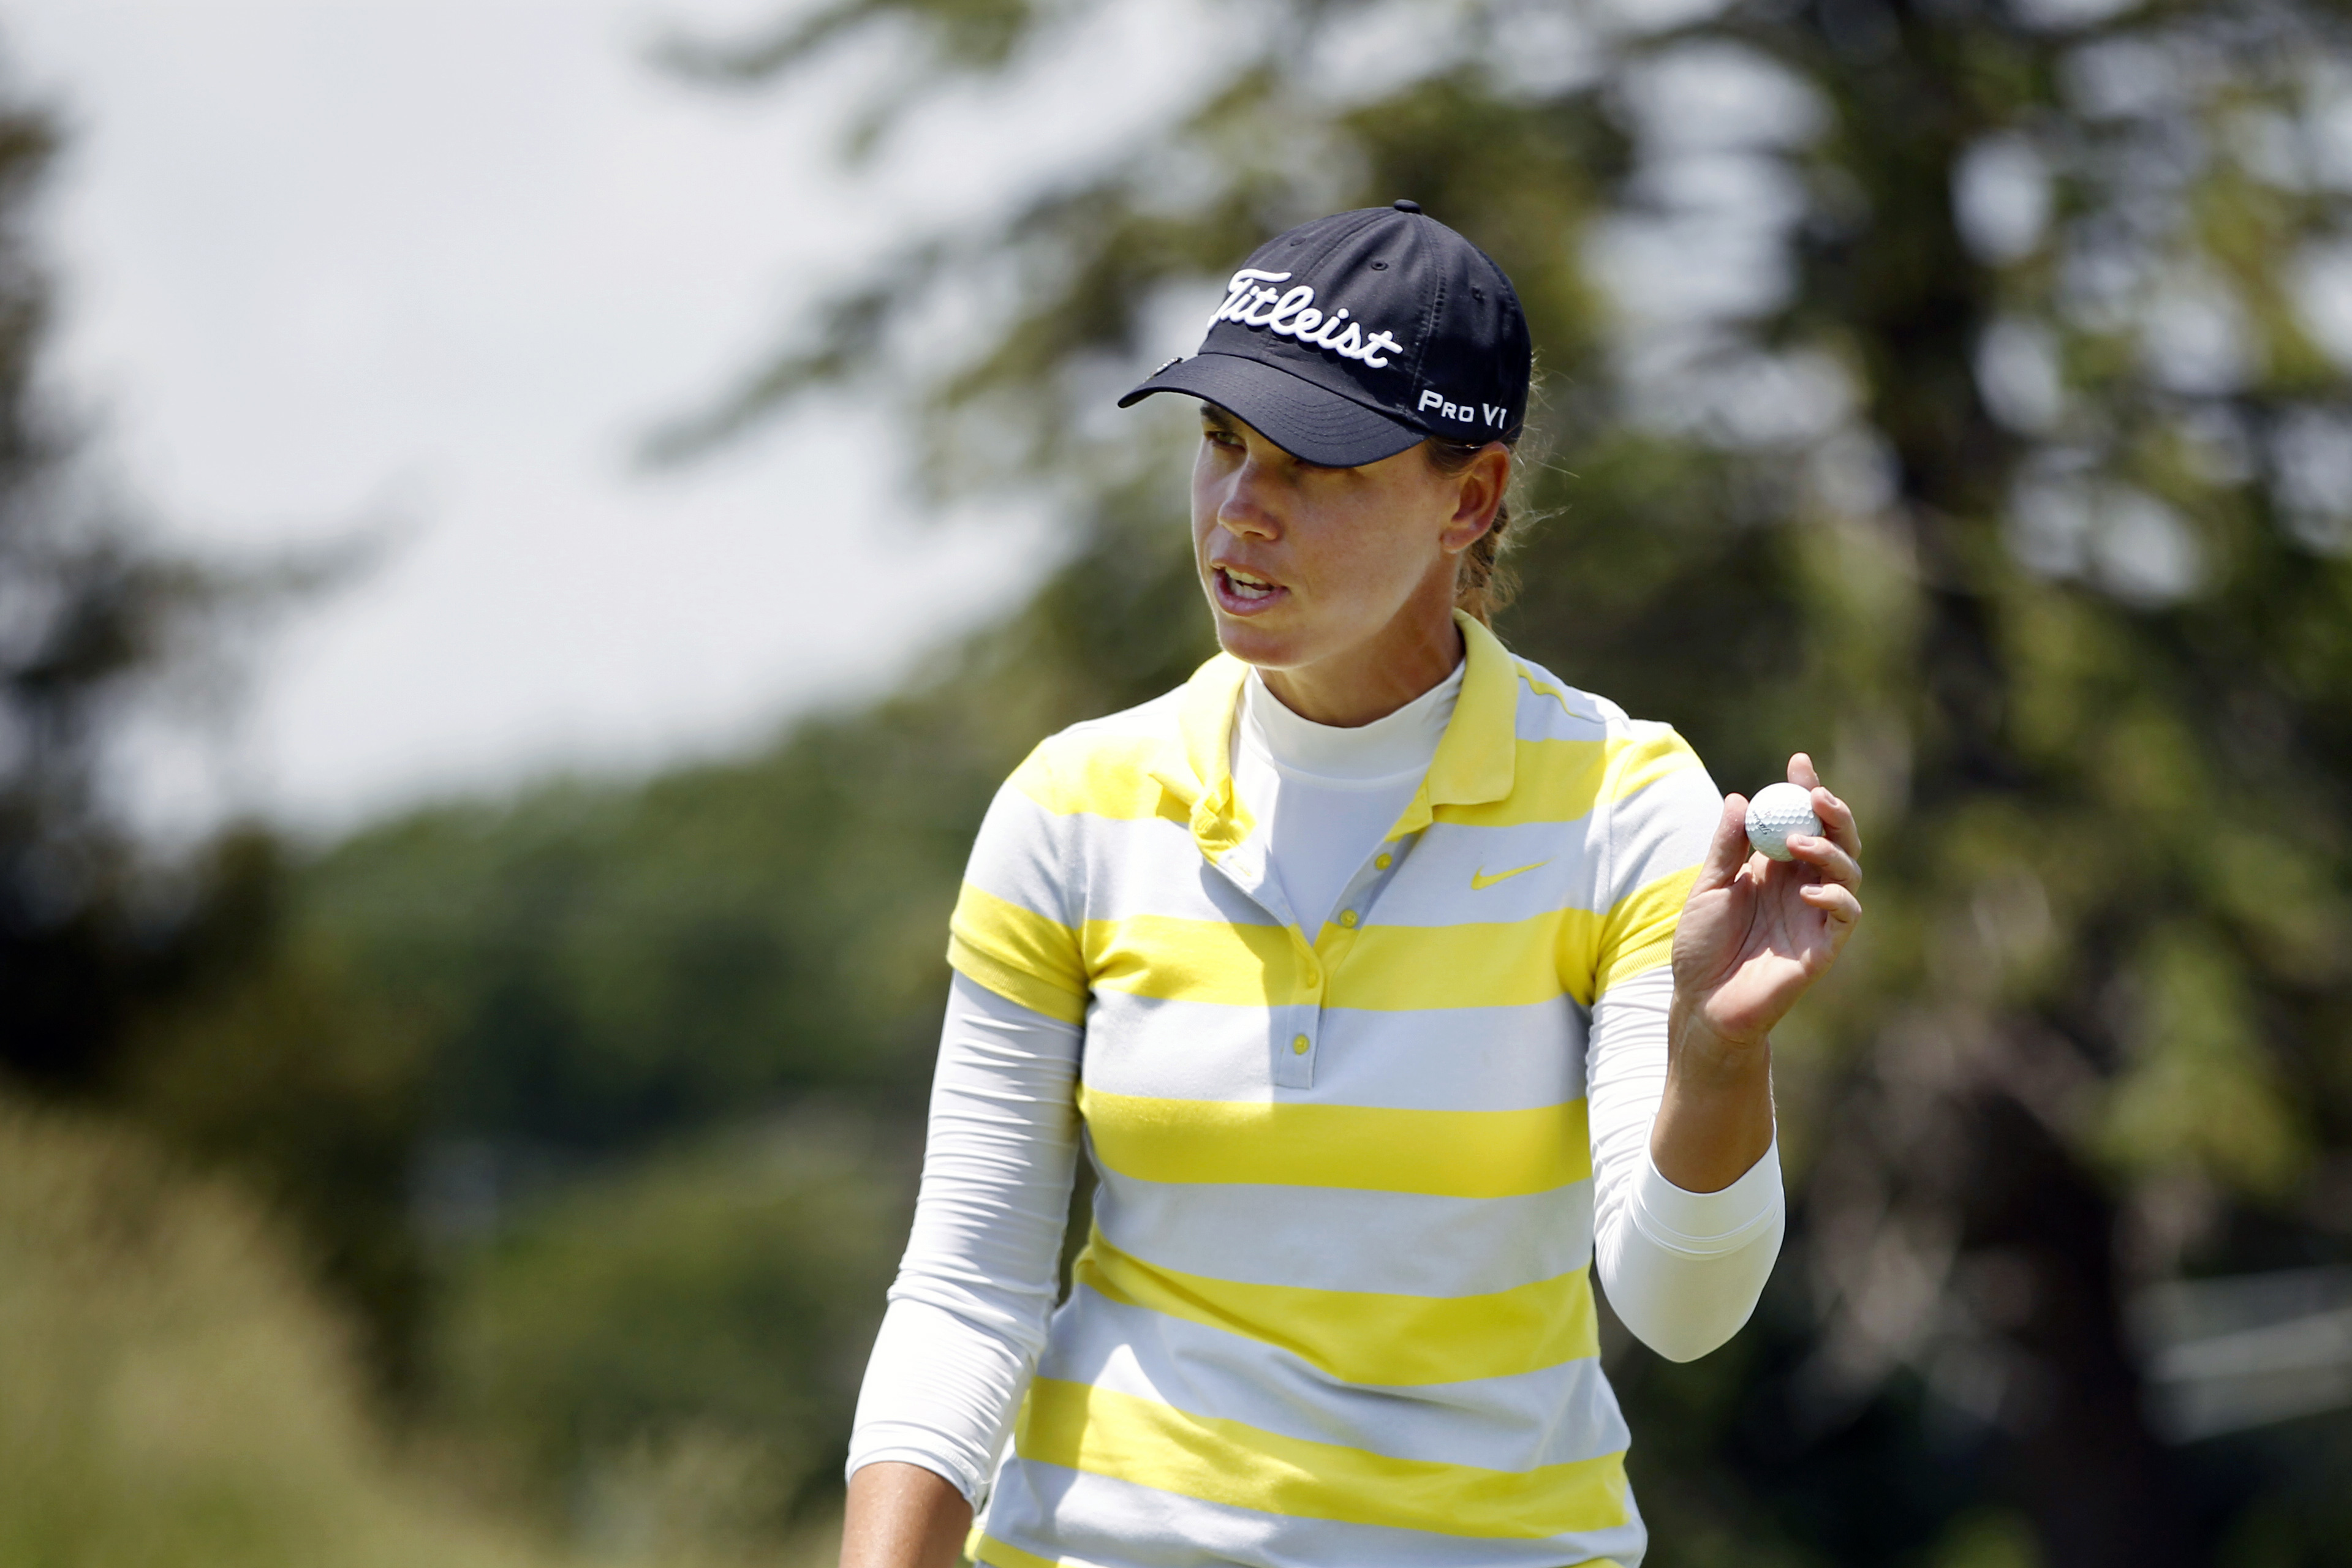 Karine Icher, of France, holds up her ball on the ninth hole of the second round of the ShopRite LPGA Classic golf tournament, Saturday, June 4, 2016, in Galloway Township, N.J.(AP Photo/Mel